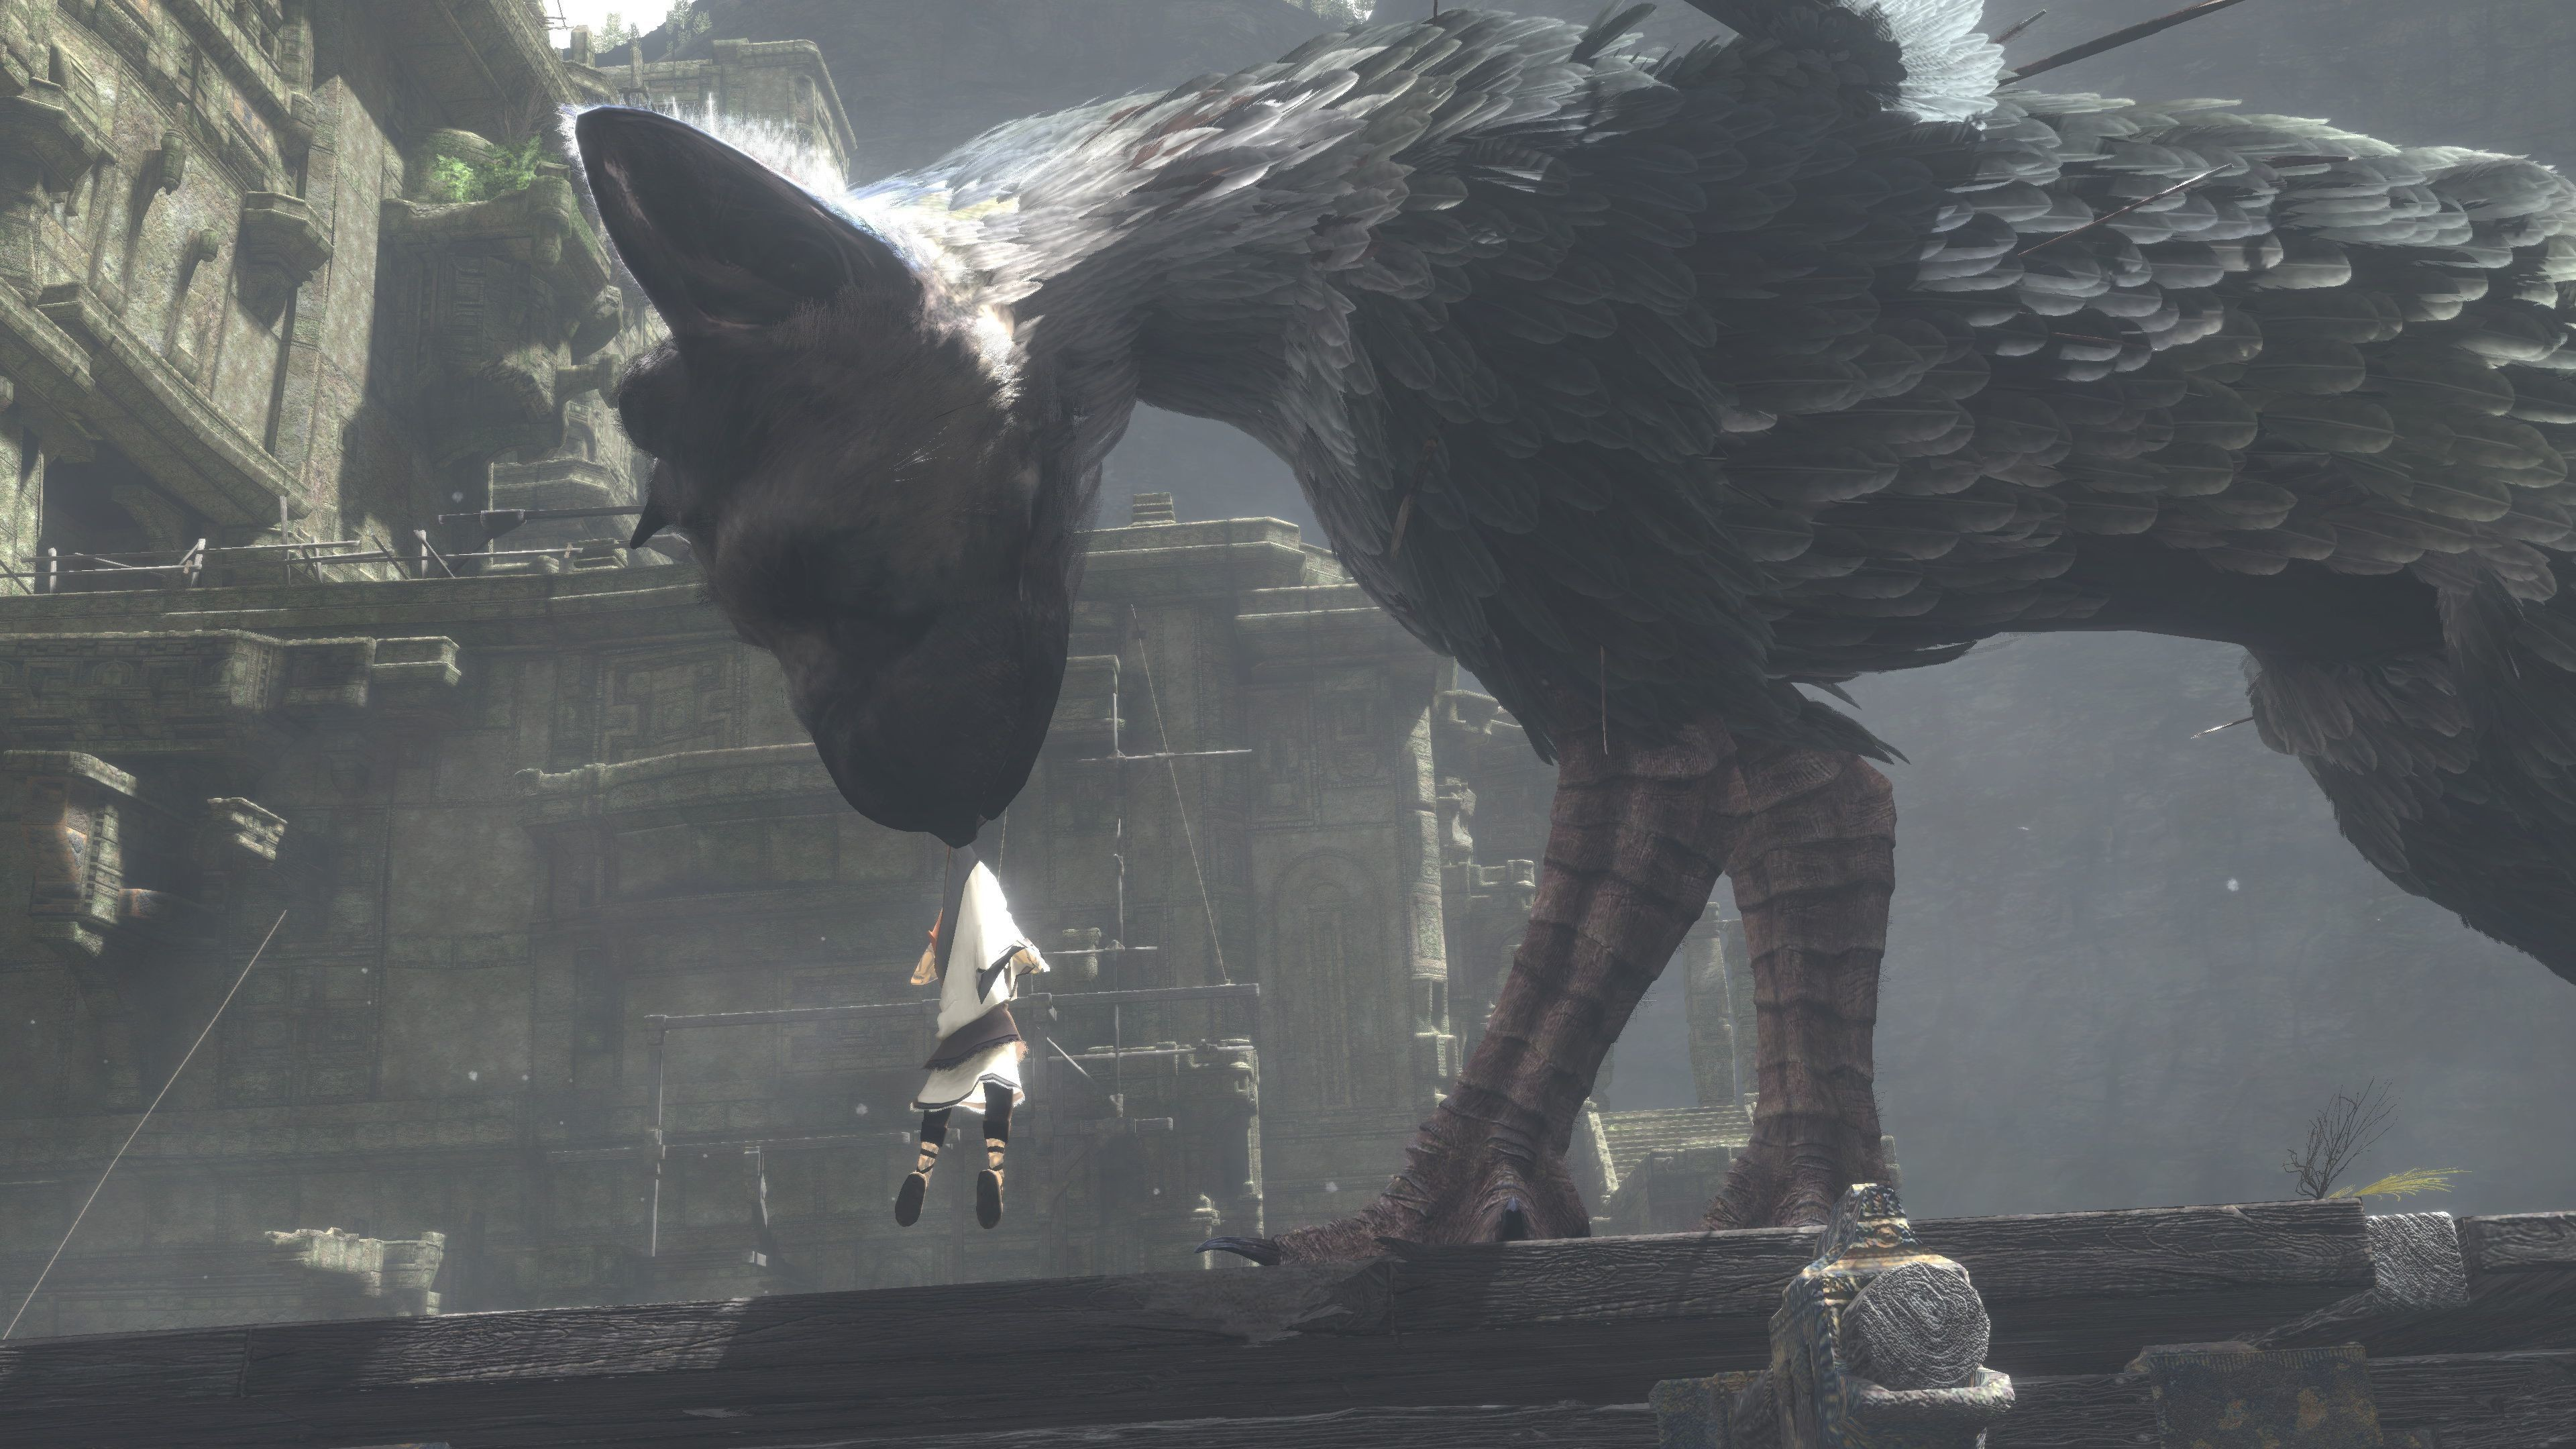 Hd Cool Boy Wallpaper Wallpaper The Last Guardian Trico Best Games 2016 Games